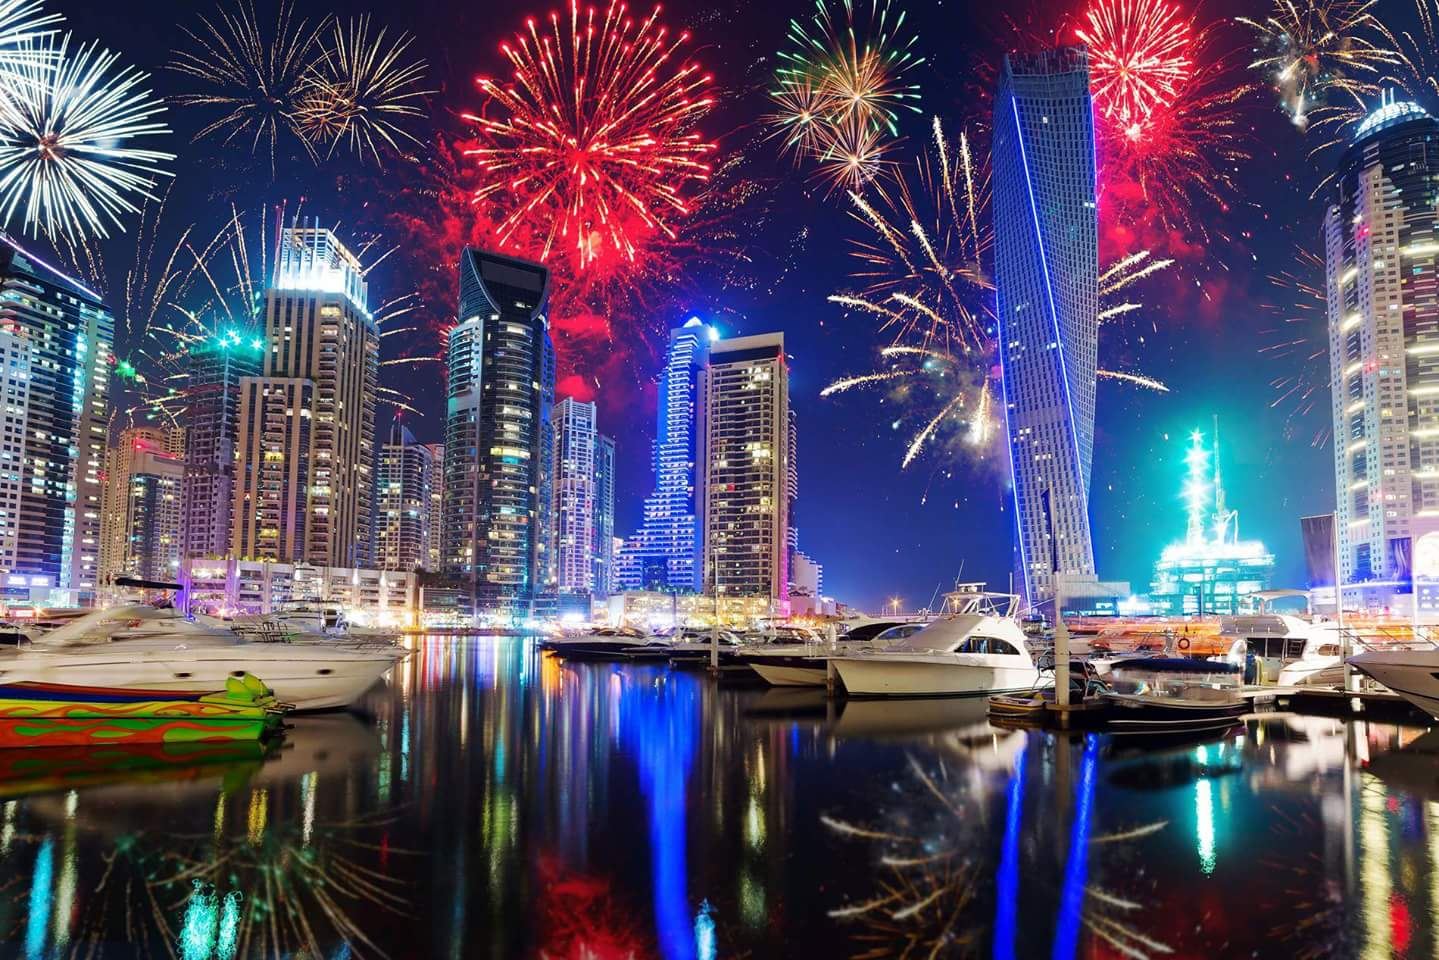 UAE counts down to its biggest fireworks display – Destination My Dubai